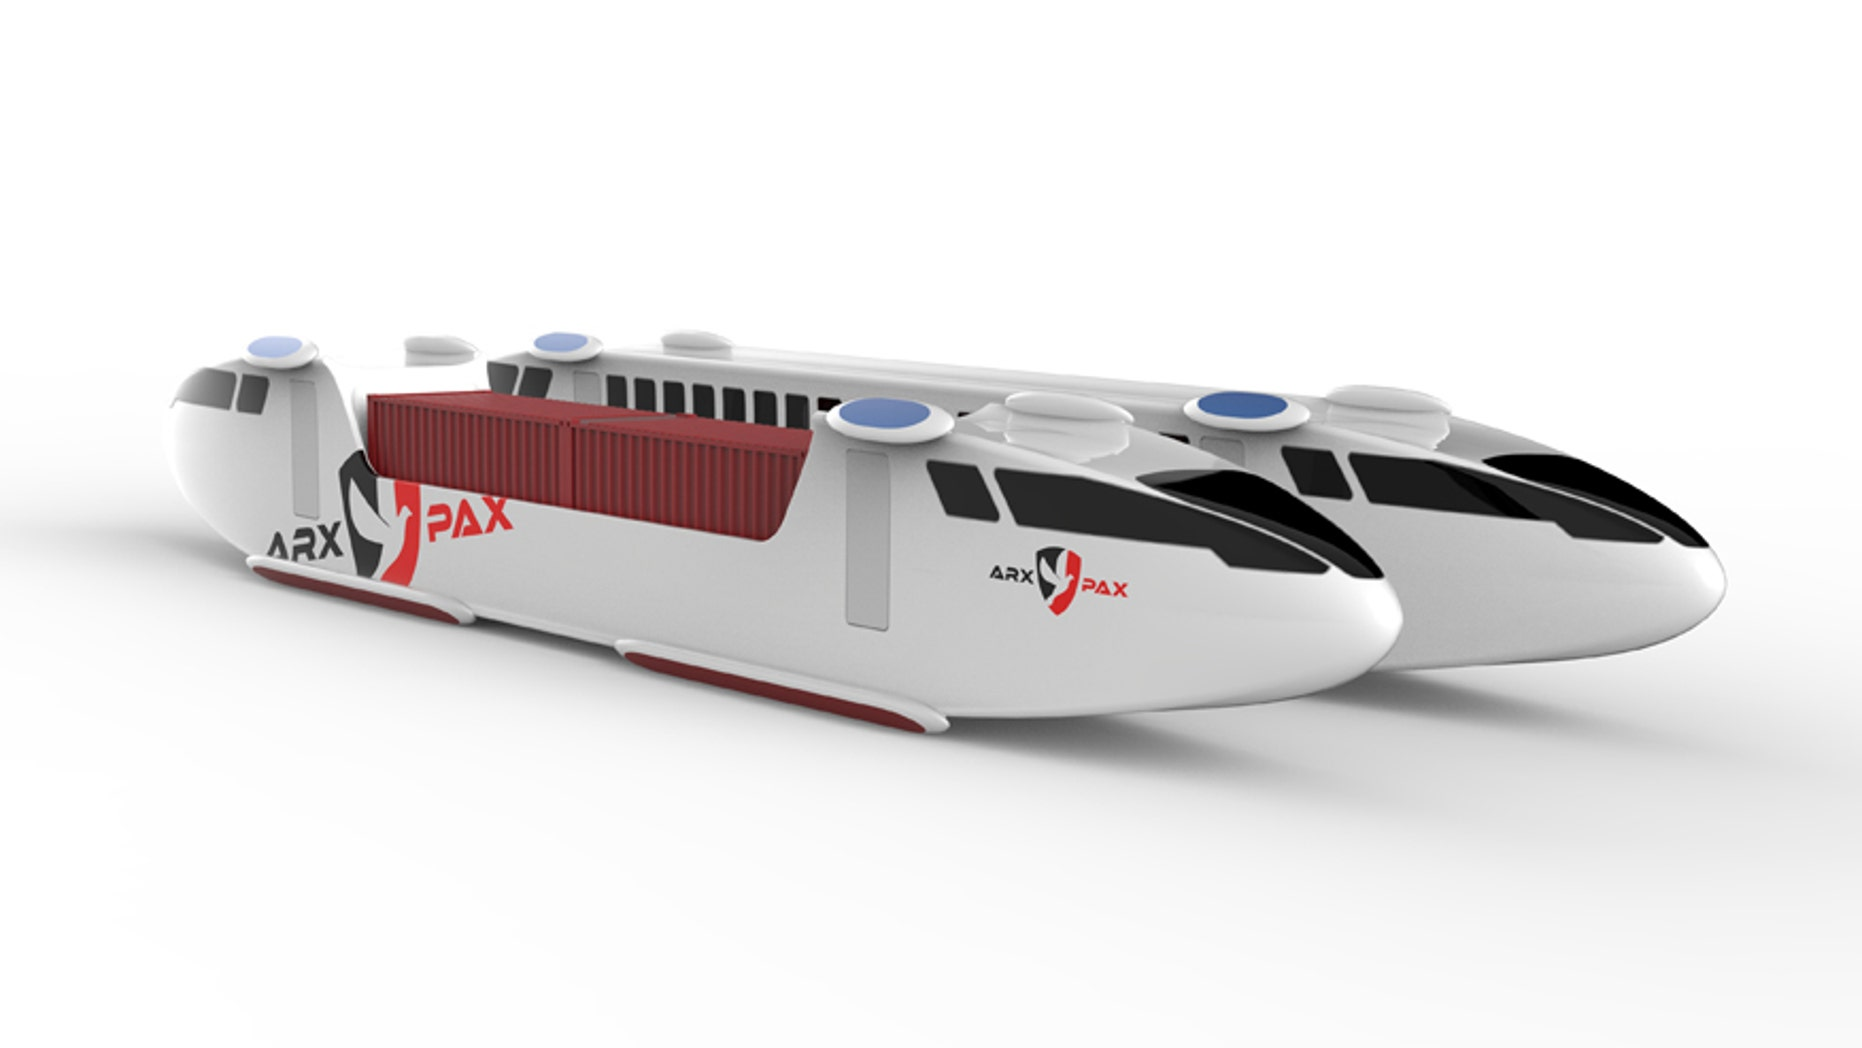 Arx Pax's concept for a Hyperloop pod using its patented Hover Engines (Arx Pax)